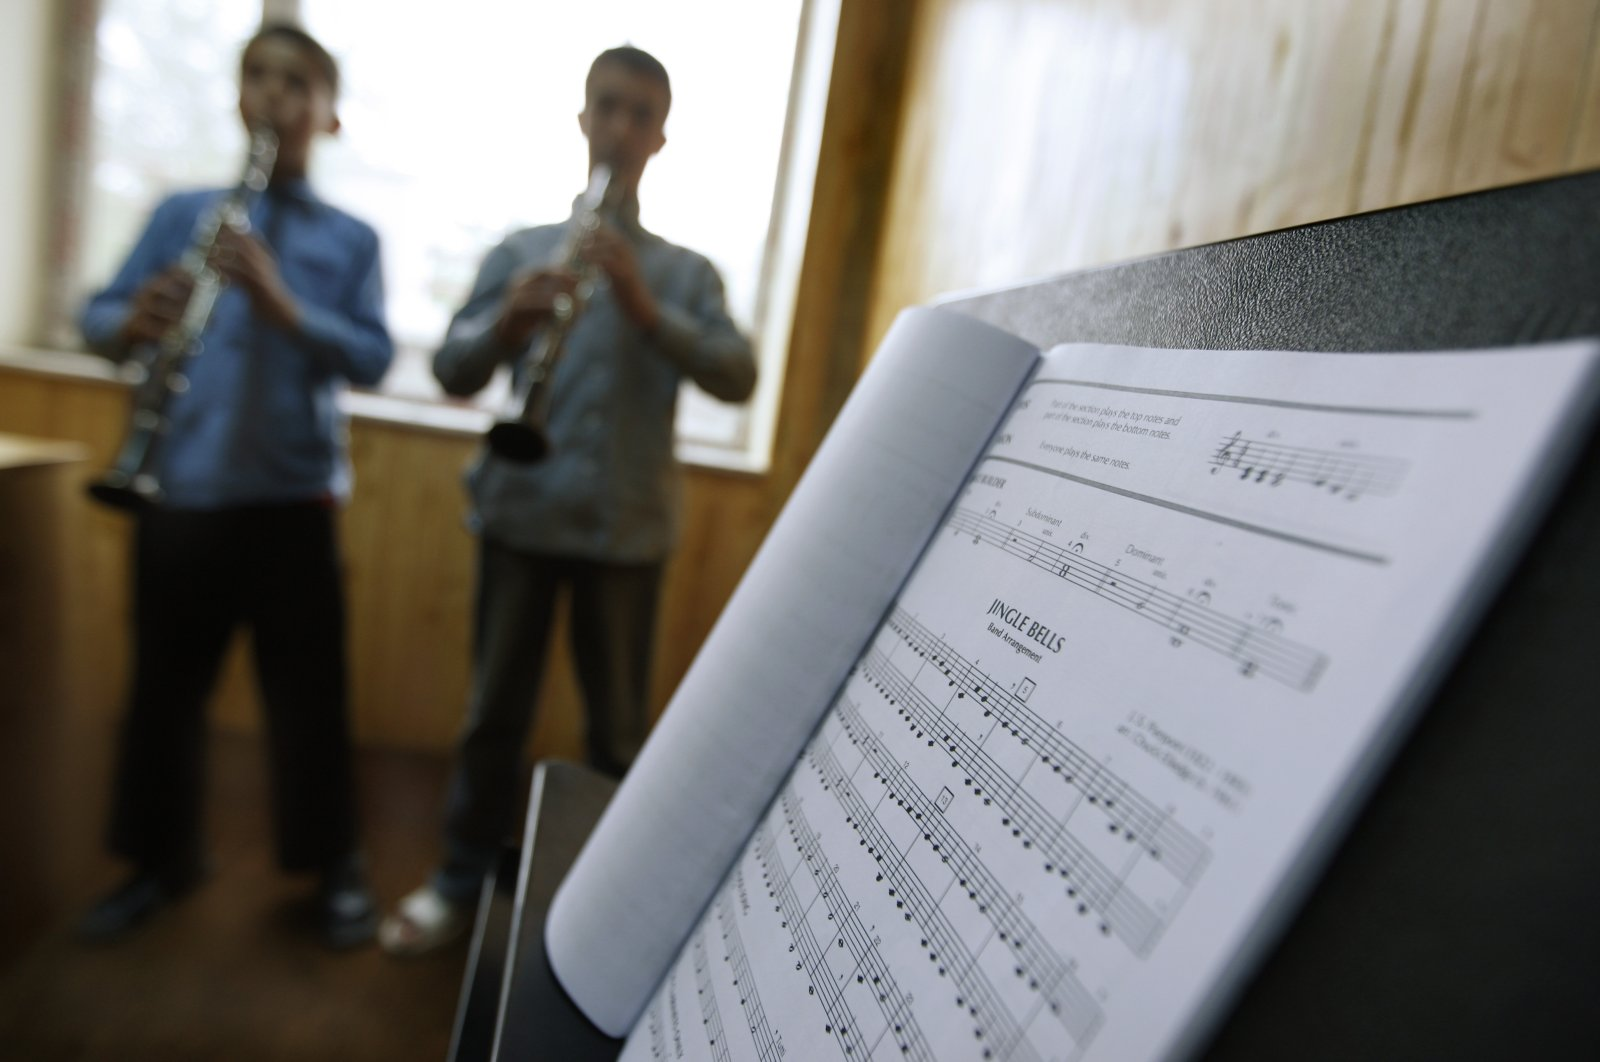 Students learn to play music at the Afgan National Institute of Music, ANIM, in Kabul, Afghanistan, May 11, 2010.   (AP Photo/File)